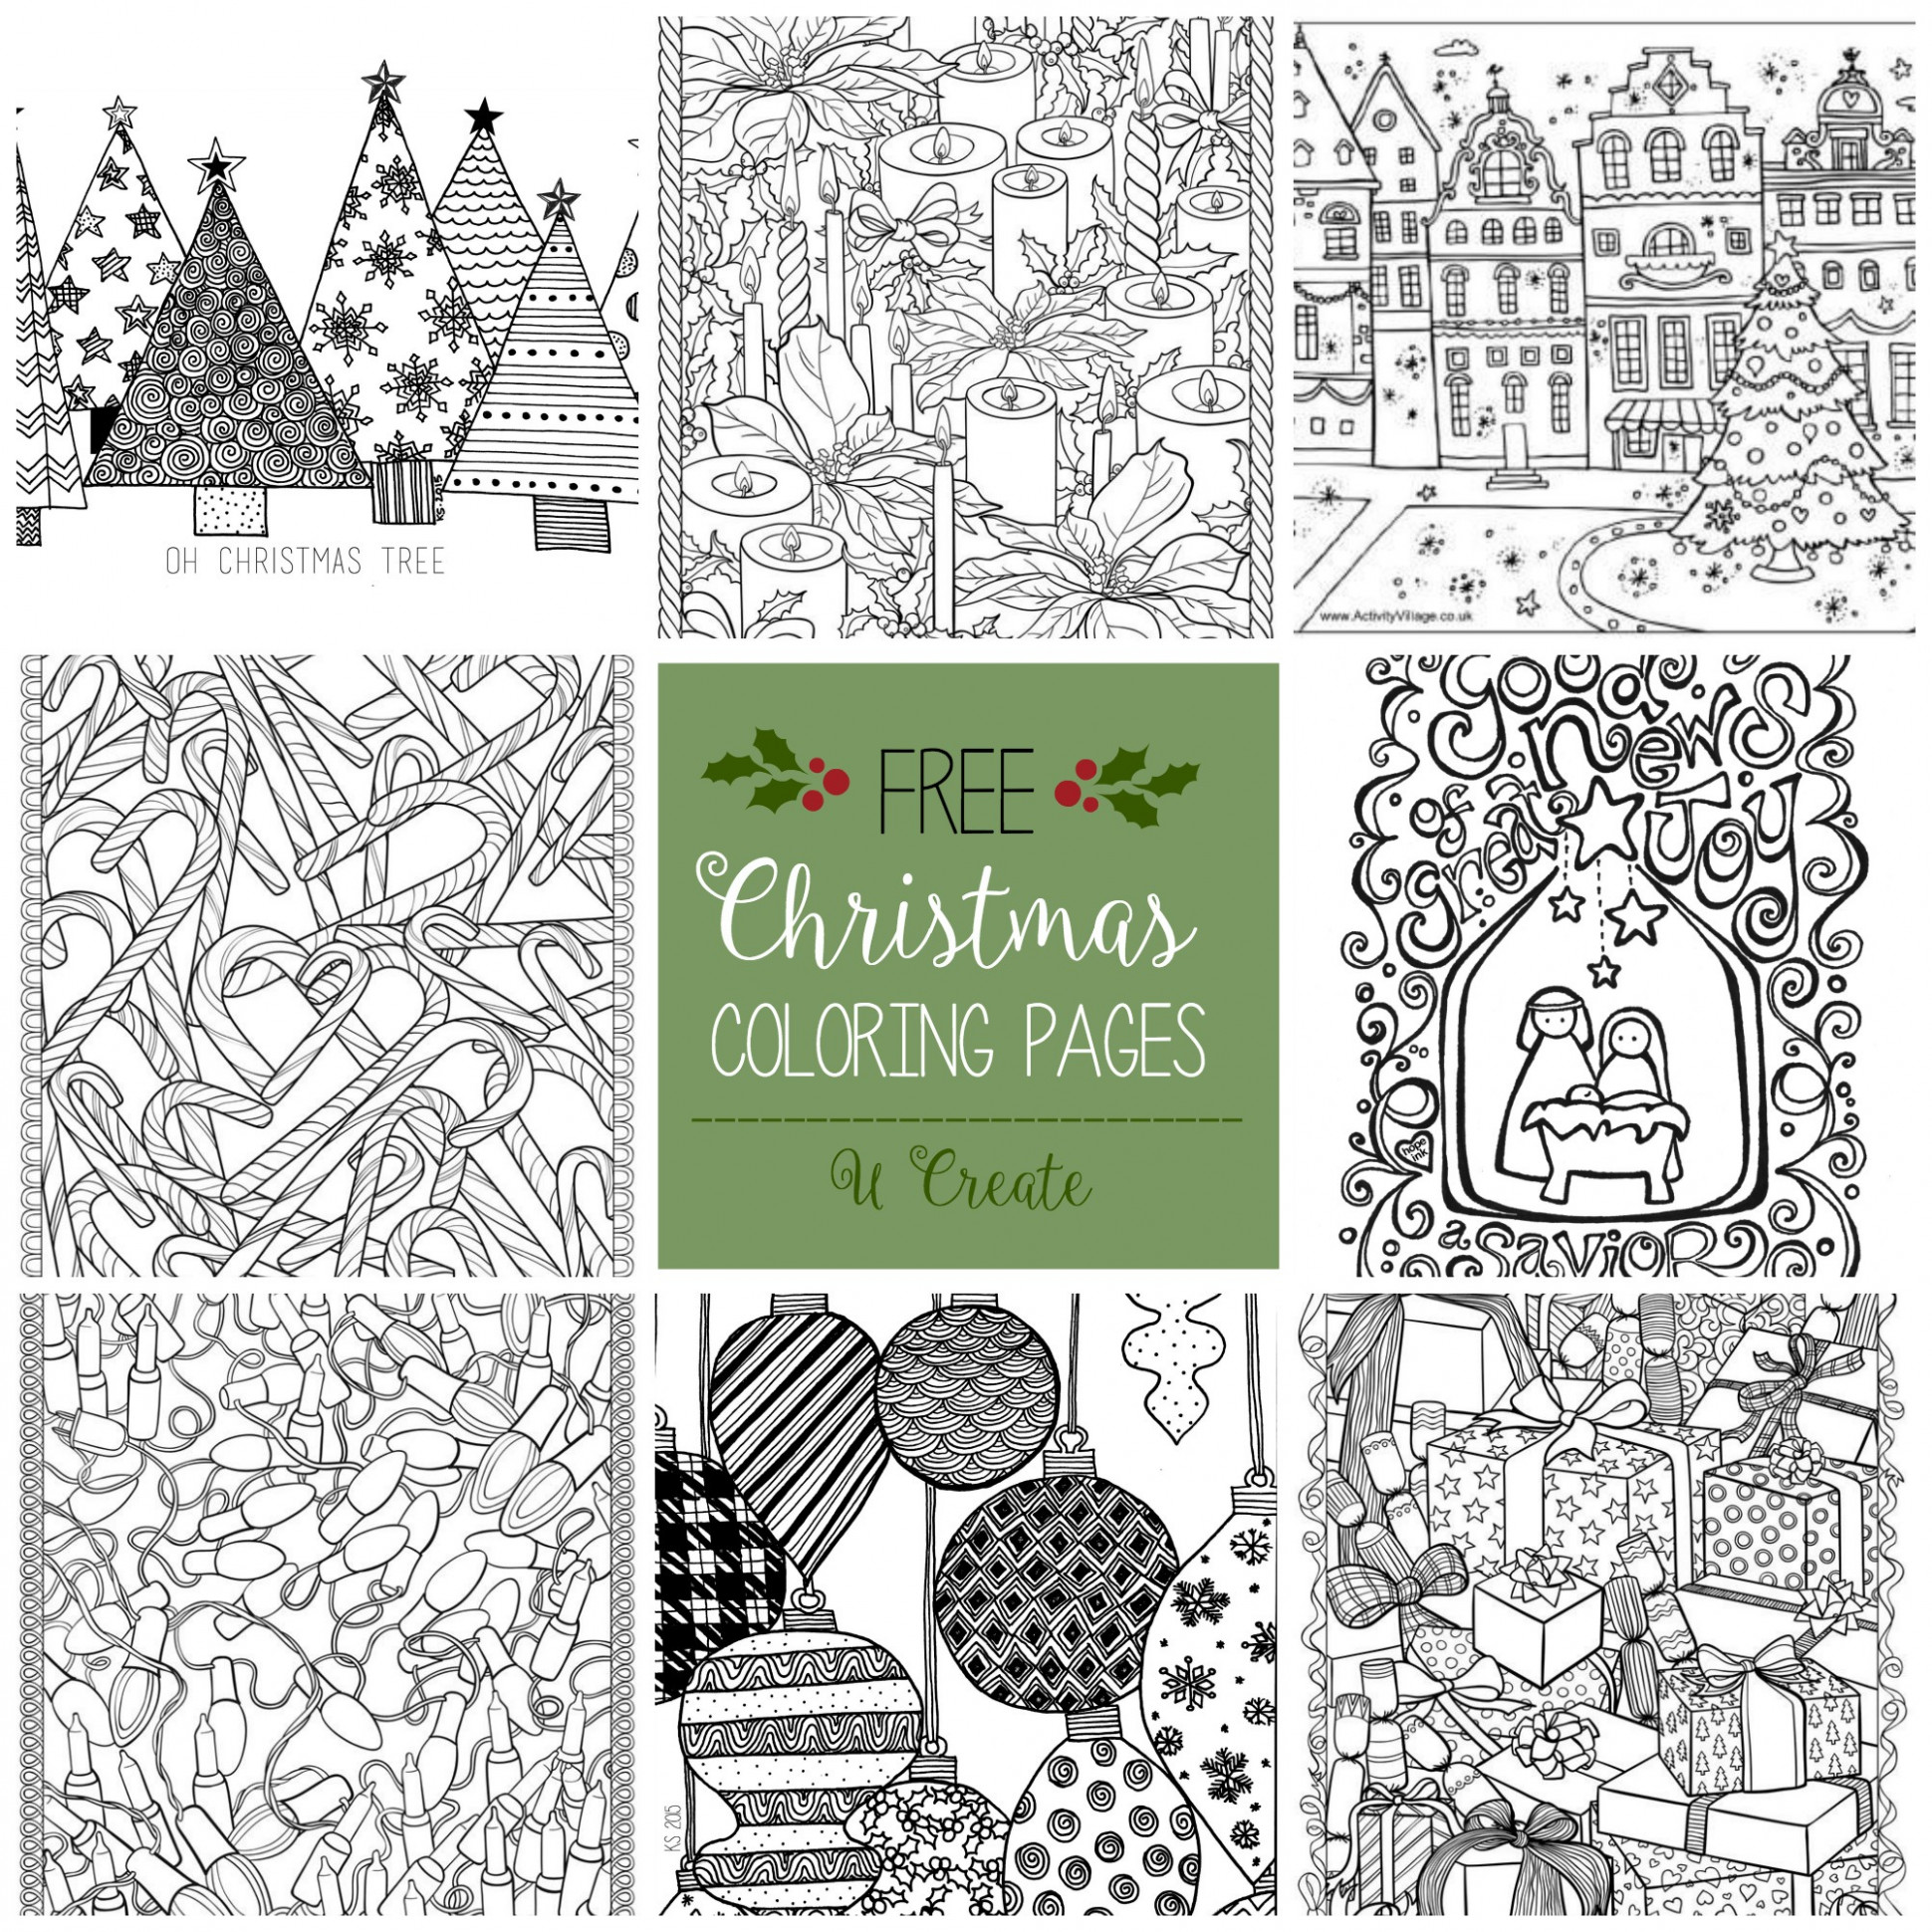 Free Christmas Adult Coloring Pages – U Create – Christmas Coloring Adults